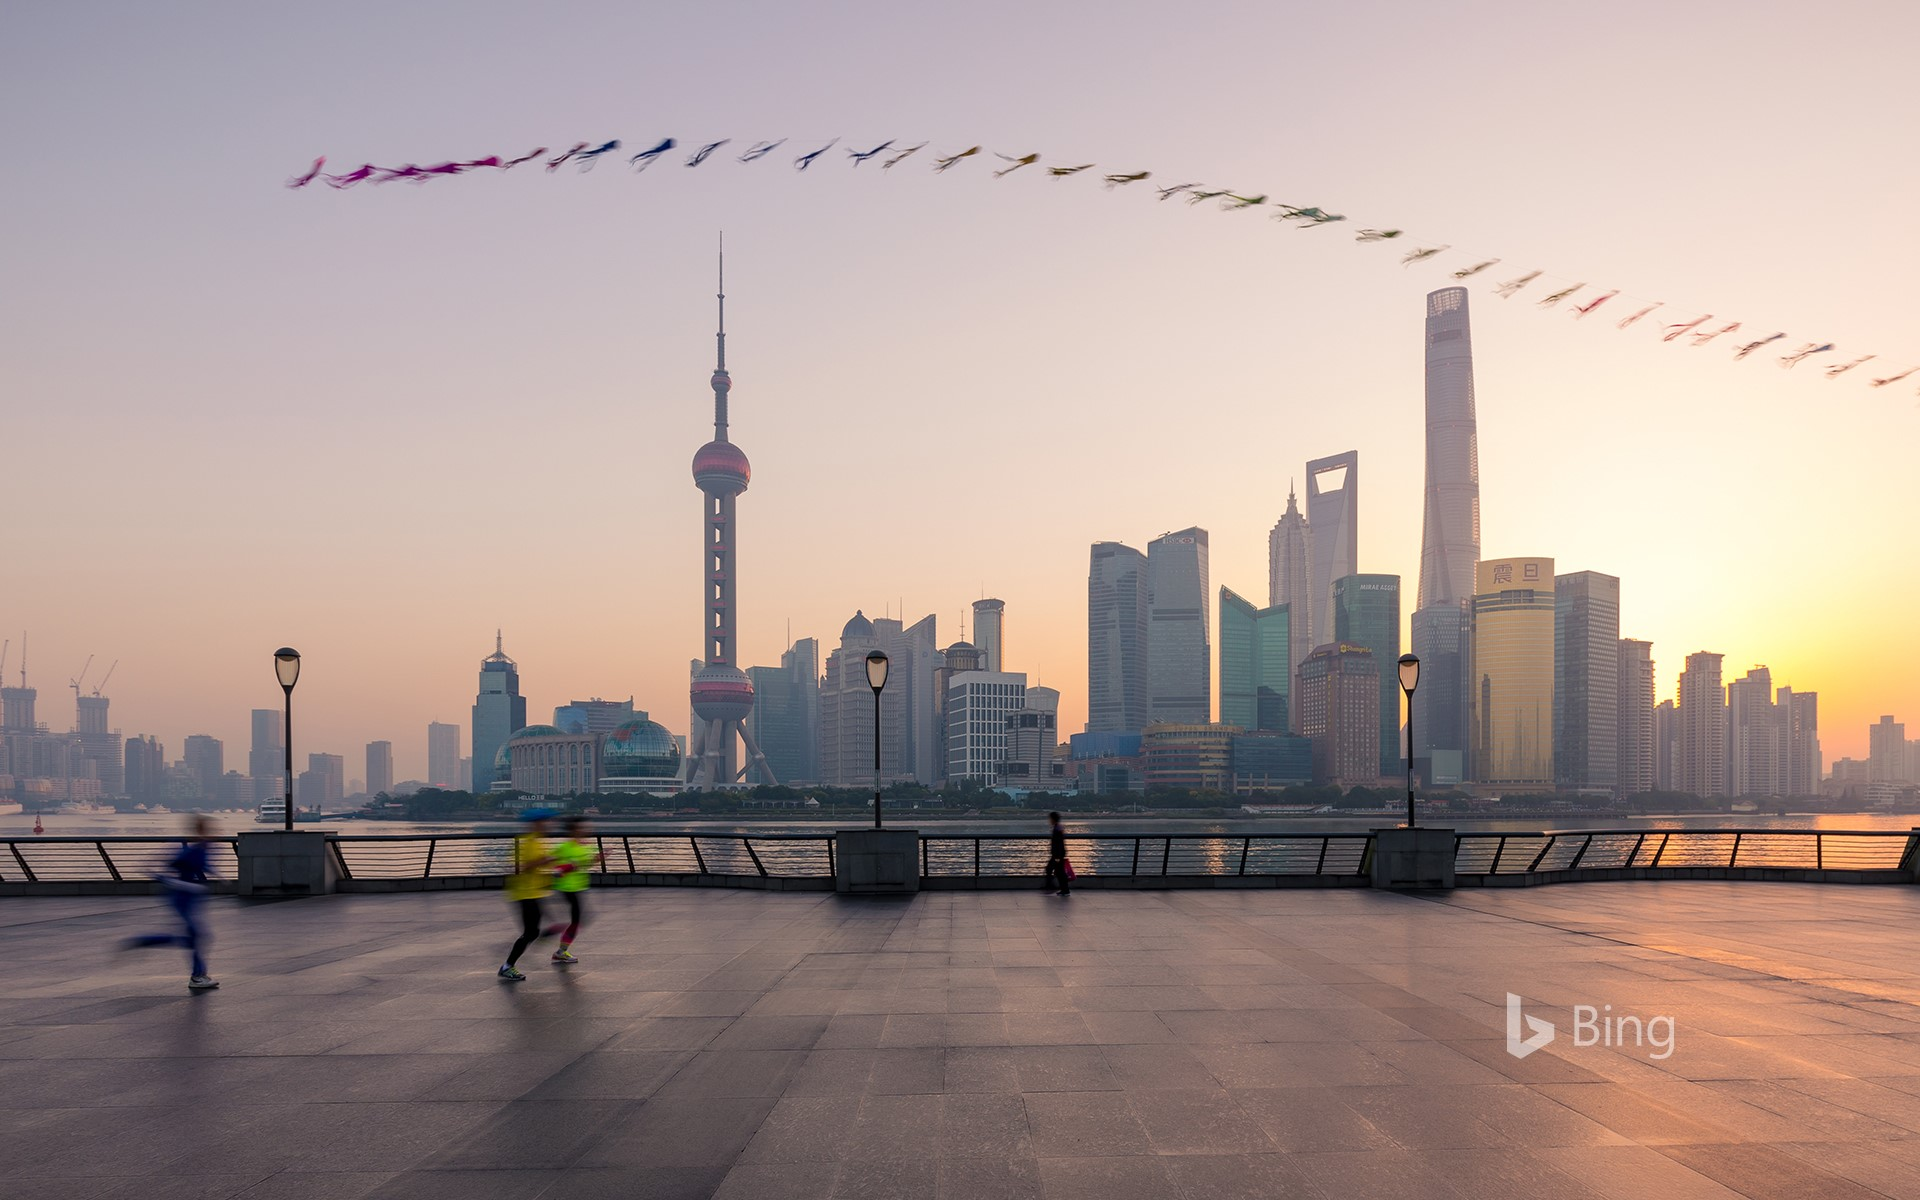 [Autumn Equinox Today] A kite in the morning in the morning, Shanghai, China